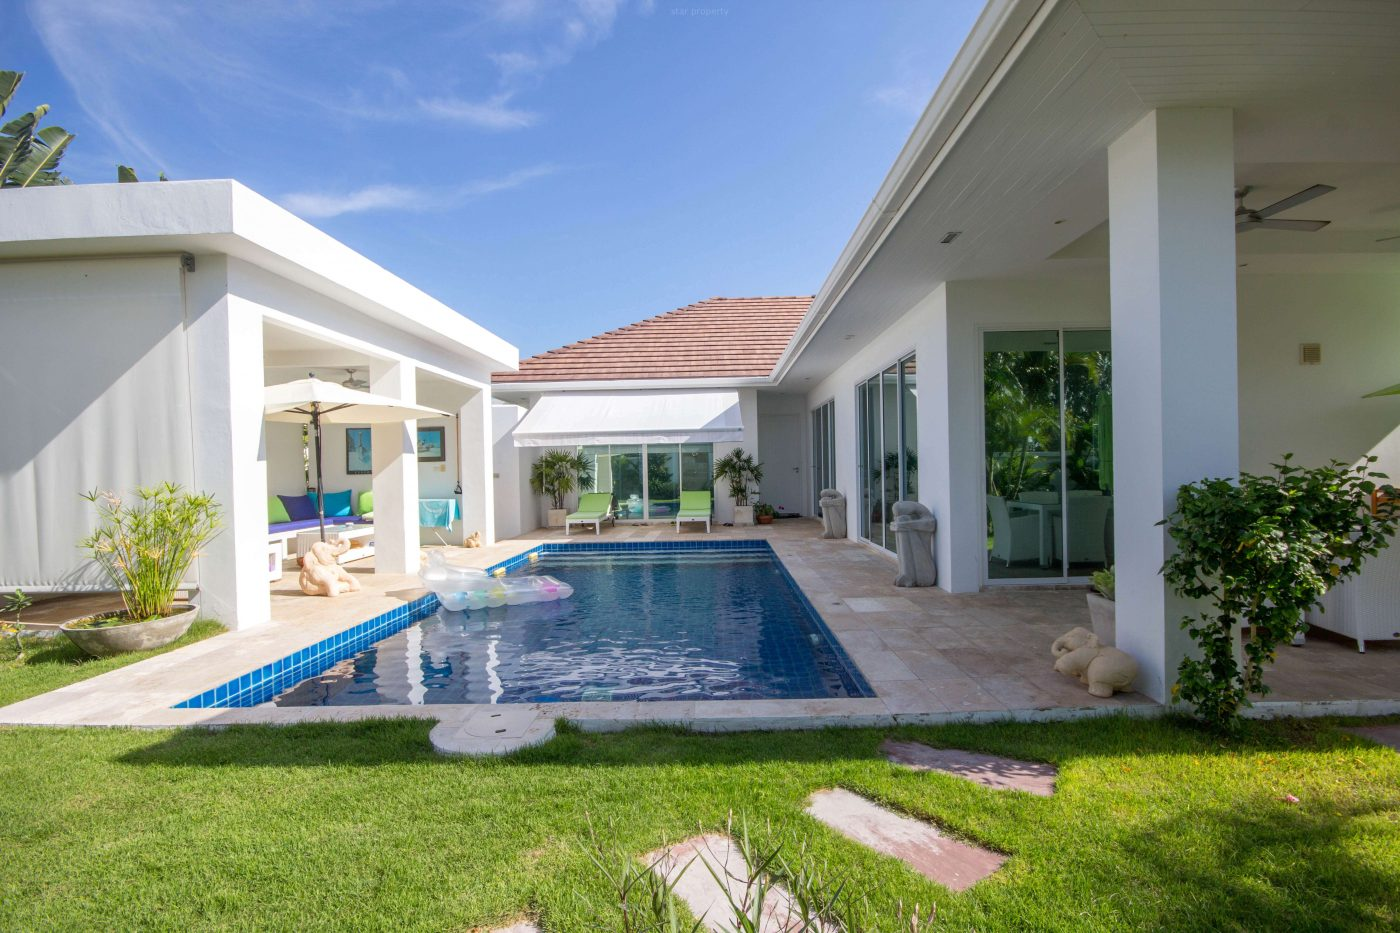 Beautiful Modern Pool Villa for Sale Soi 88 at Hua Hin District, Prachuap Khiri Khan, Thailand